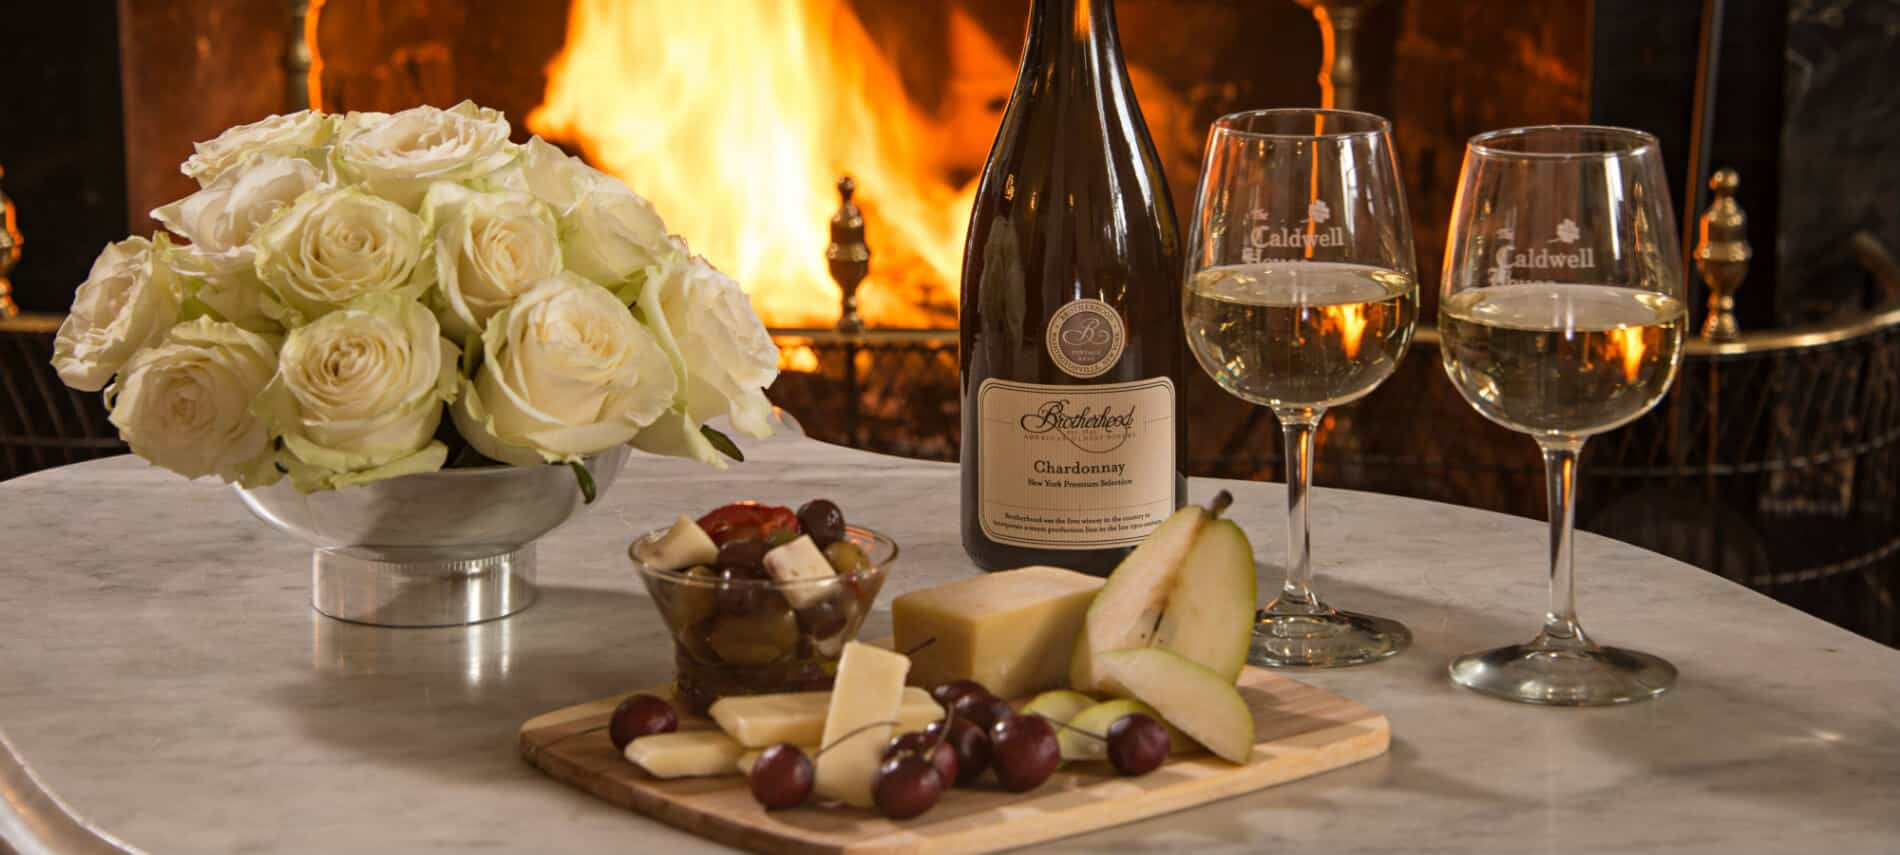 A white marble table displays fruit and cheese on tray, a bottle of Chardonnay and wine glasses; fireplace in background